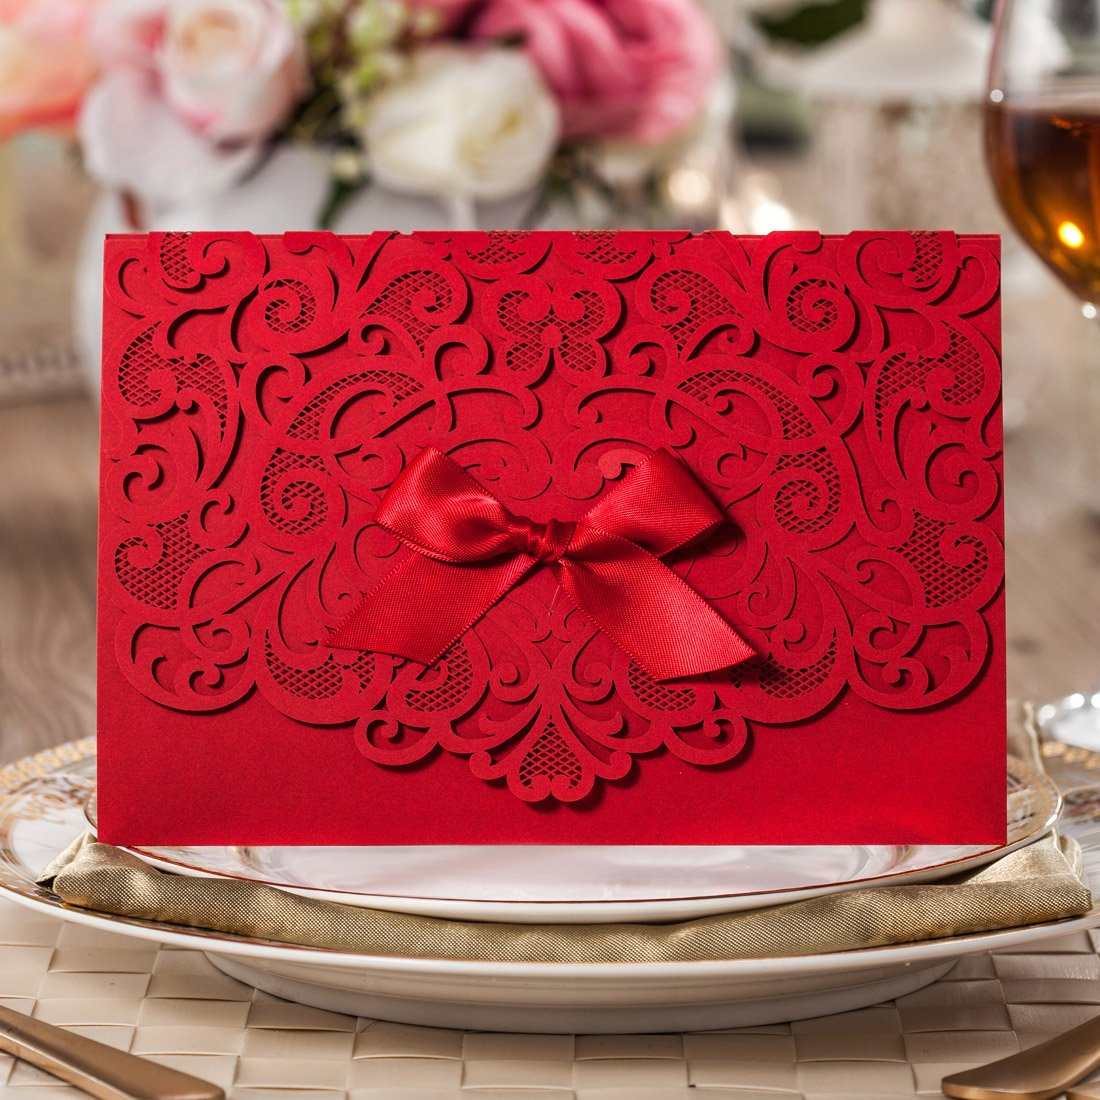 Wishmade 100x Elegant Red Laser Cut Wedding Invitation Cards Kits With Lace Bow Paper Cardstock